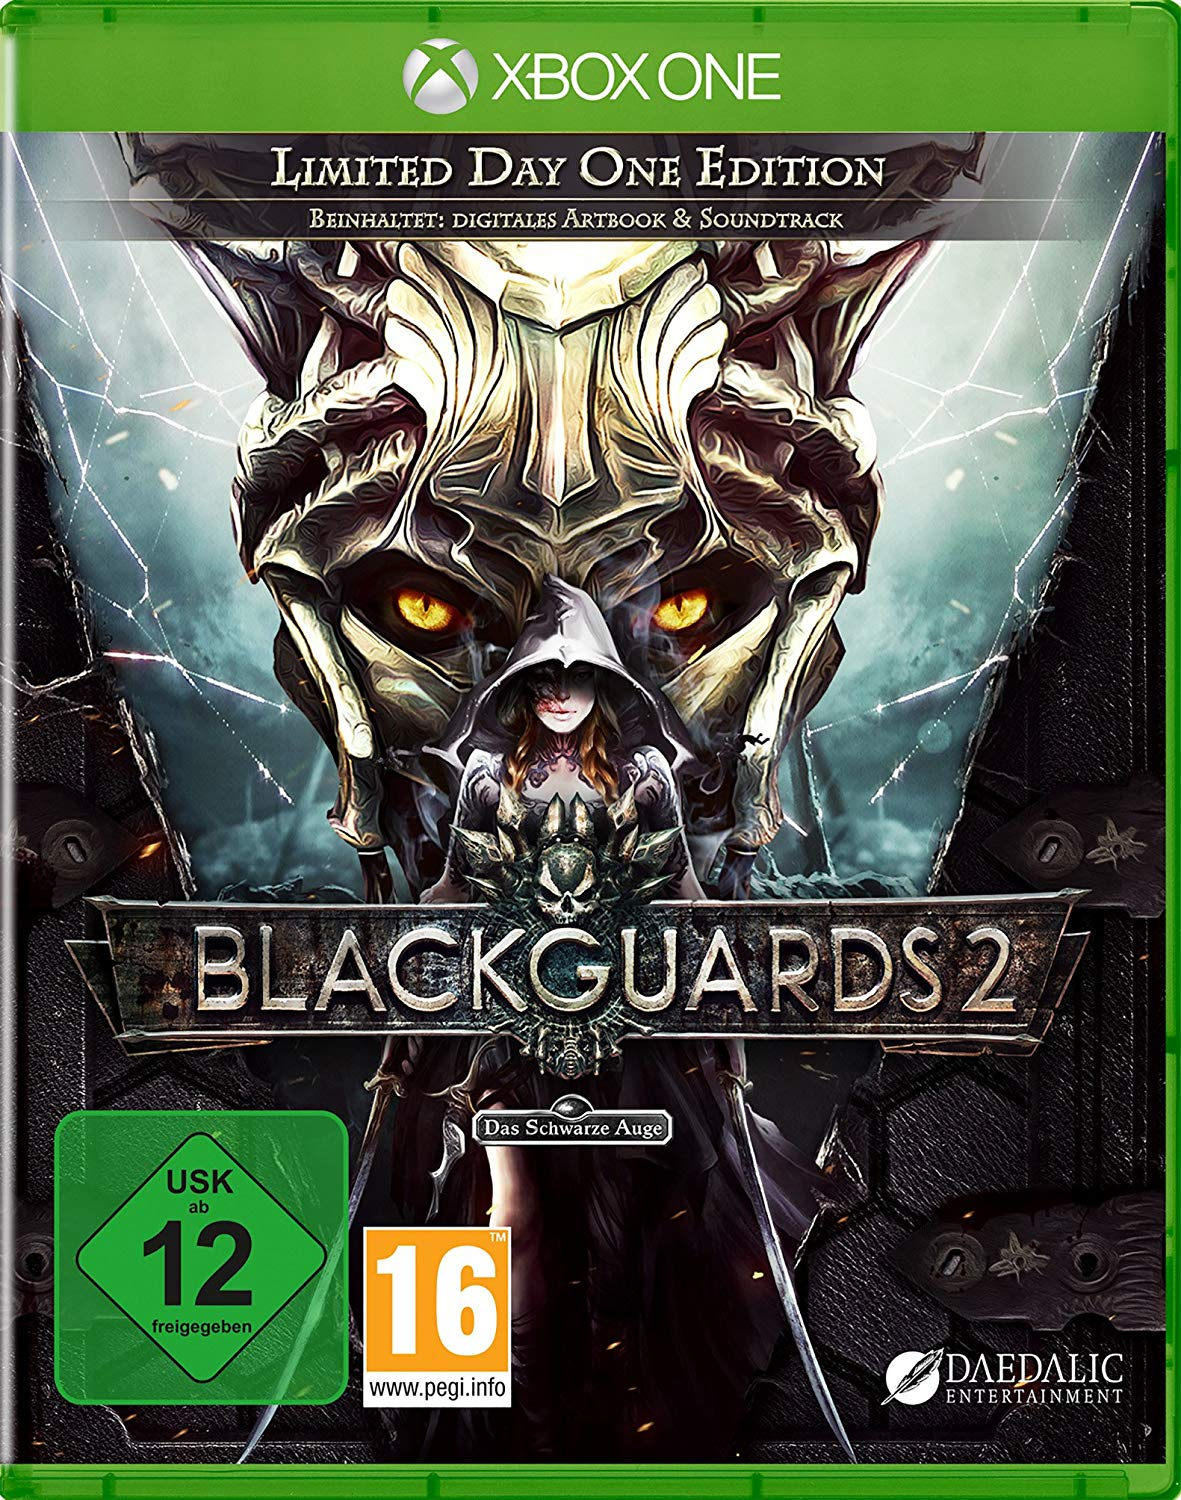 Blackguards 2 Limited Day One Edition - Xbox One Játékok